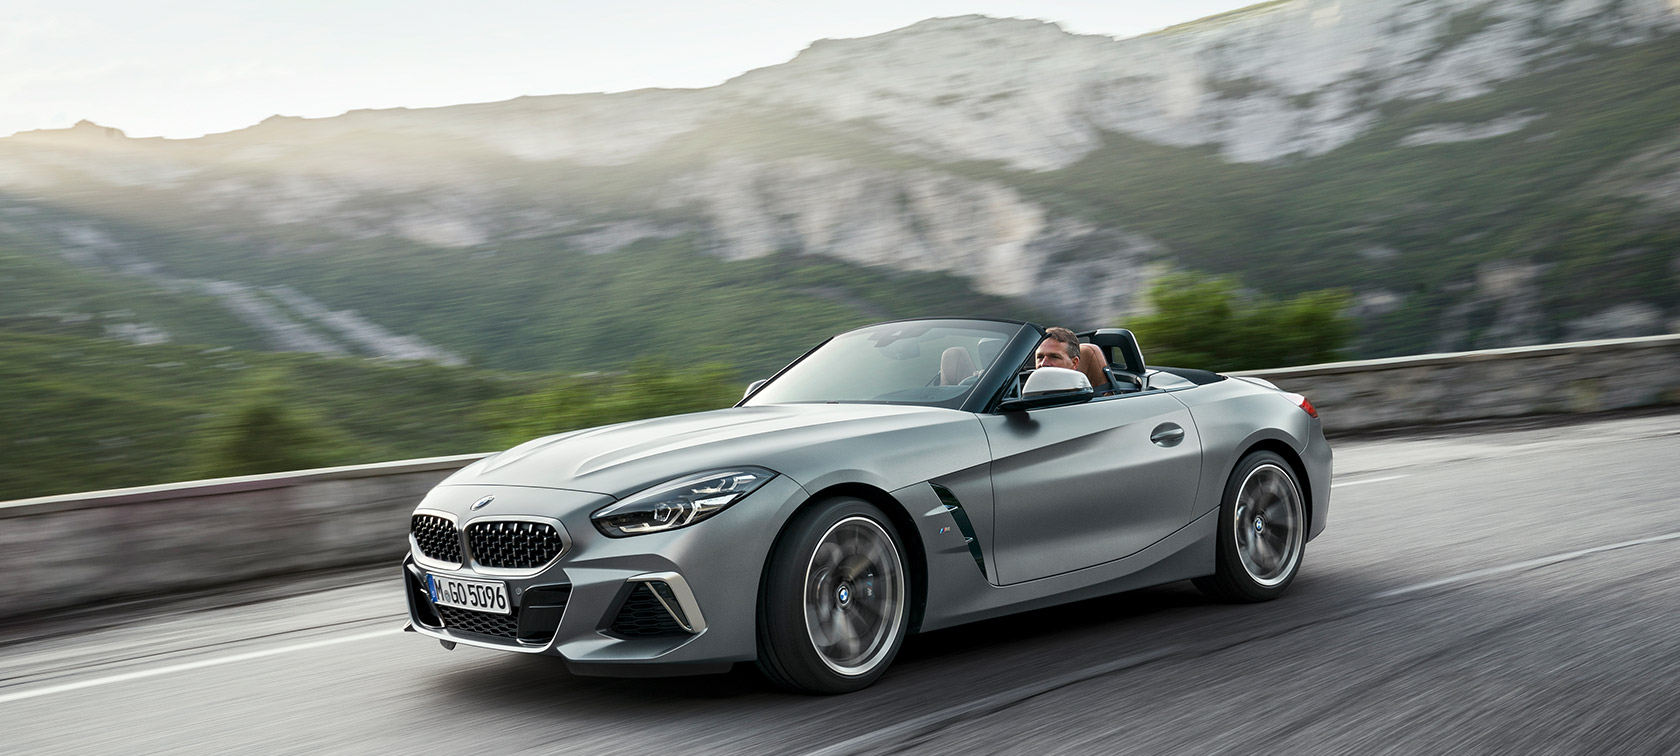 BMW Z4 Roadster M40i G29 2019 Cabrio BMW Individual Frozen grey metallic three-quarter front view driving mountain backdrop